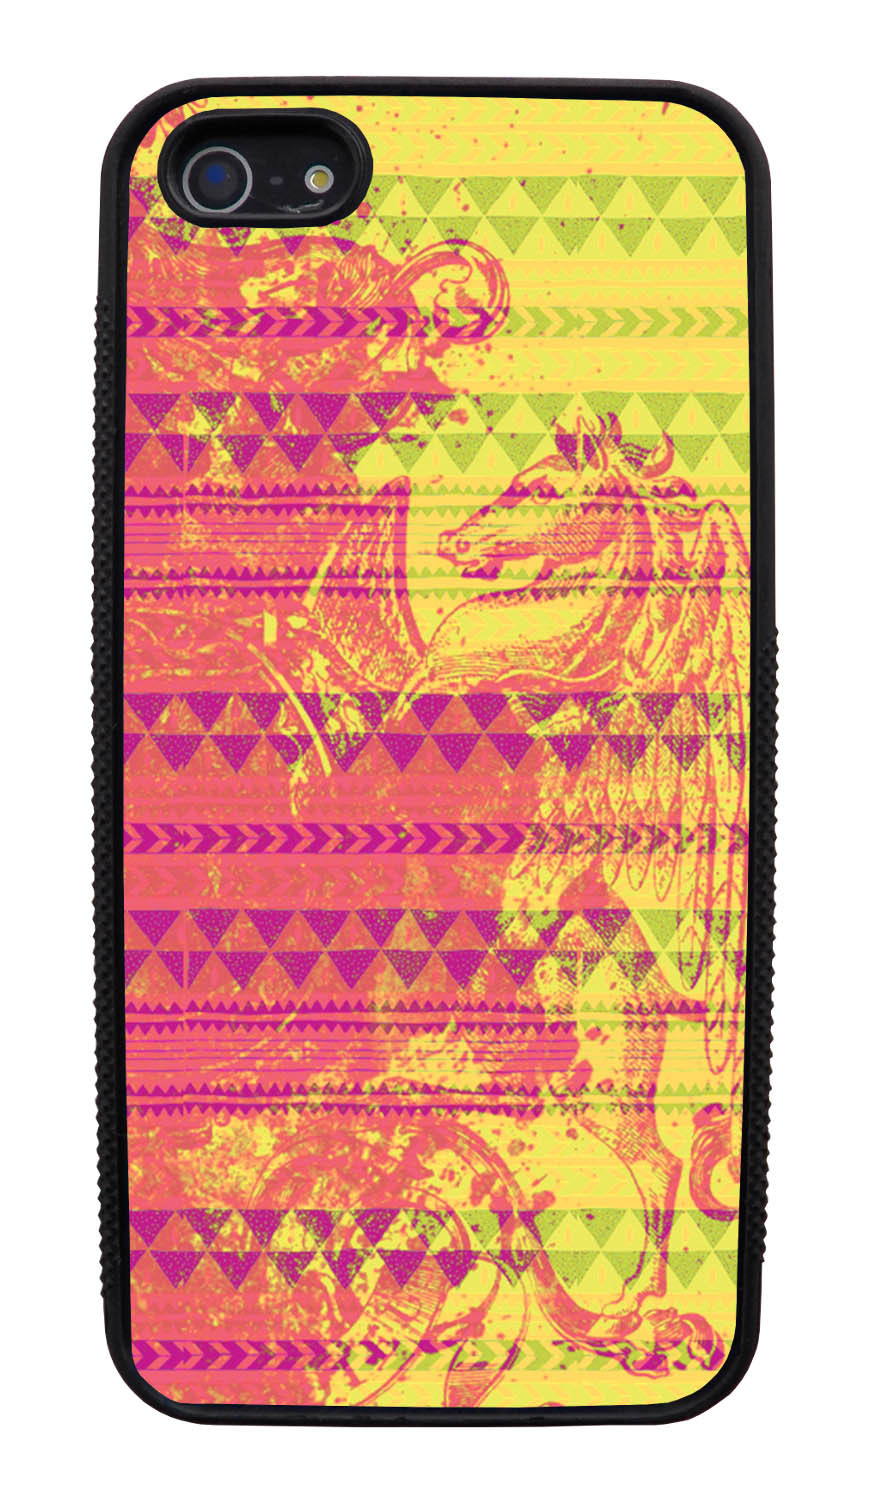 Apple iPhone 5 / 5S Aztec Case - Pink Paint with Hot Pink, Yellow, and Green - Paint Splatter Overlay - Black Slim Rubber Case